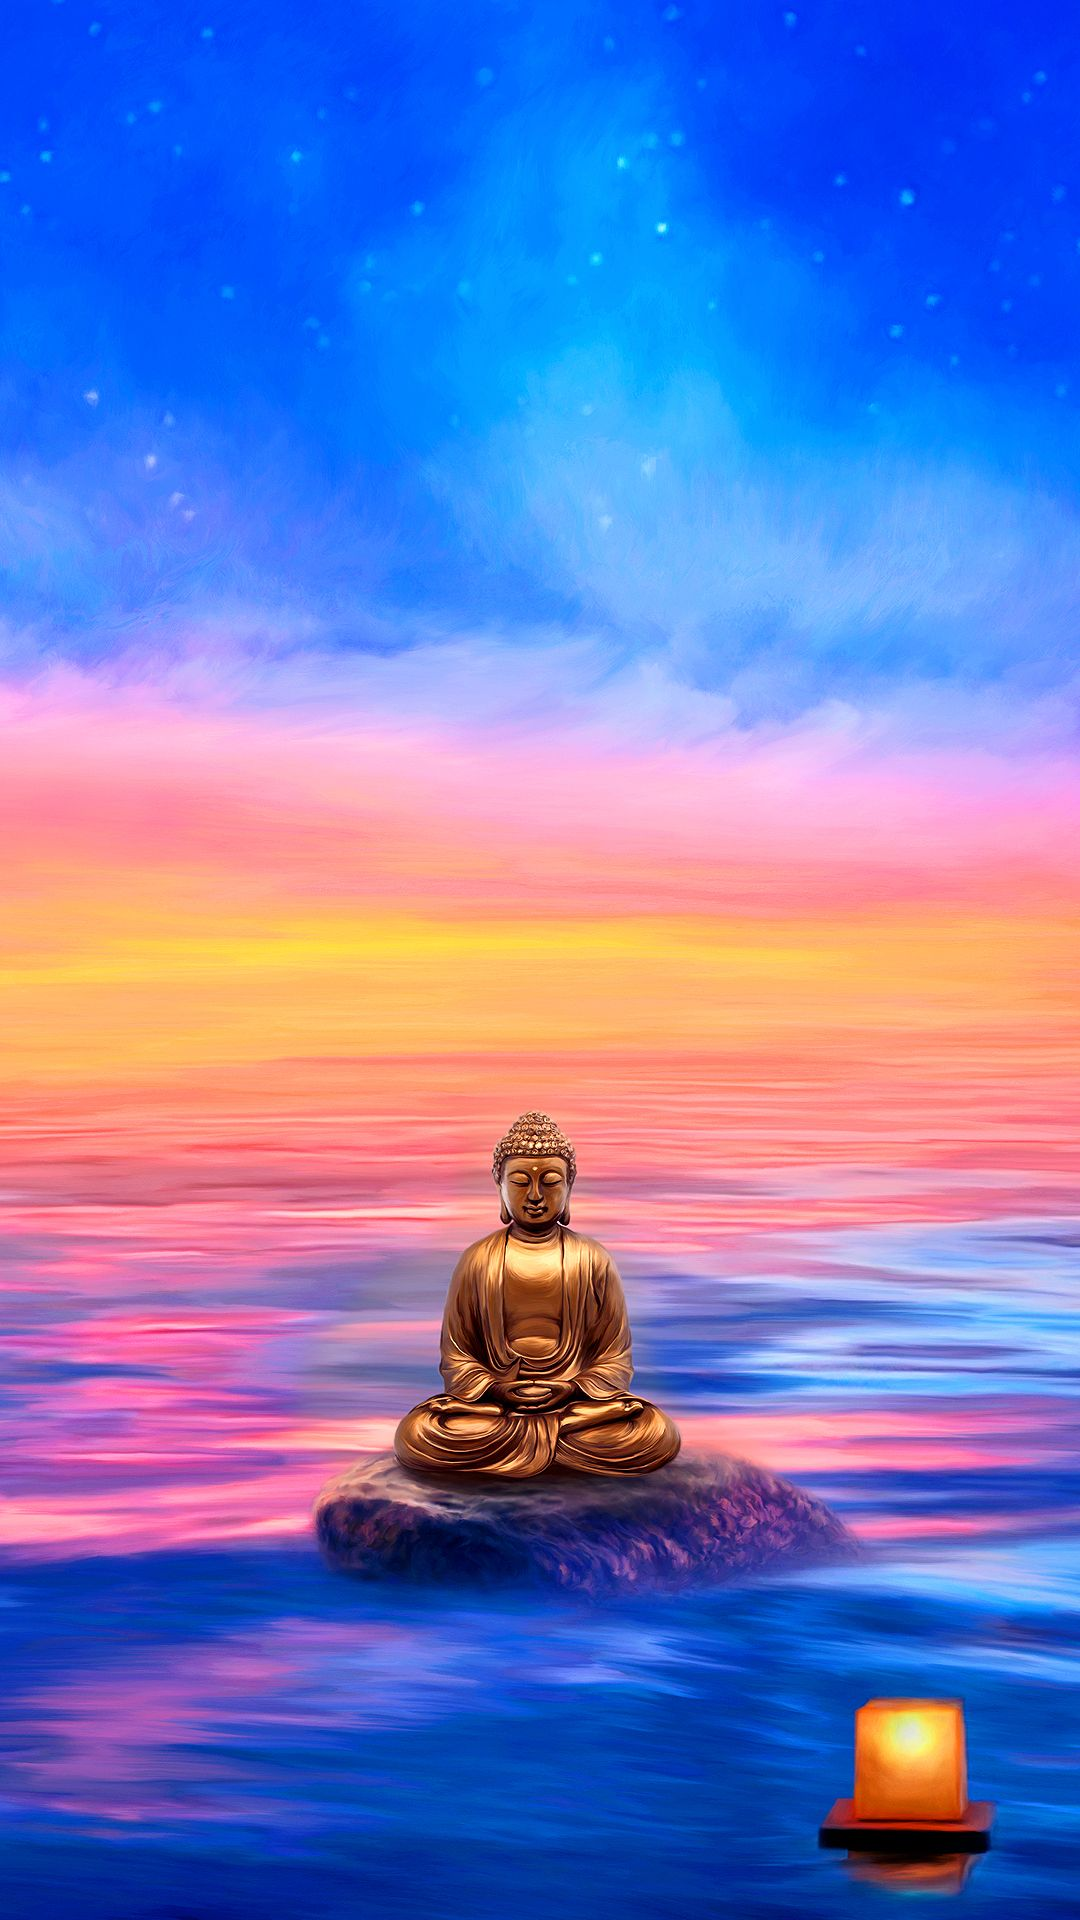 Laughing Buddha Iphone Wallpaper Buddha Wallpaper For Mobile Devices Artwork By